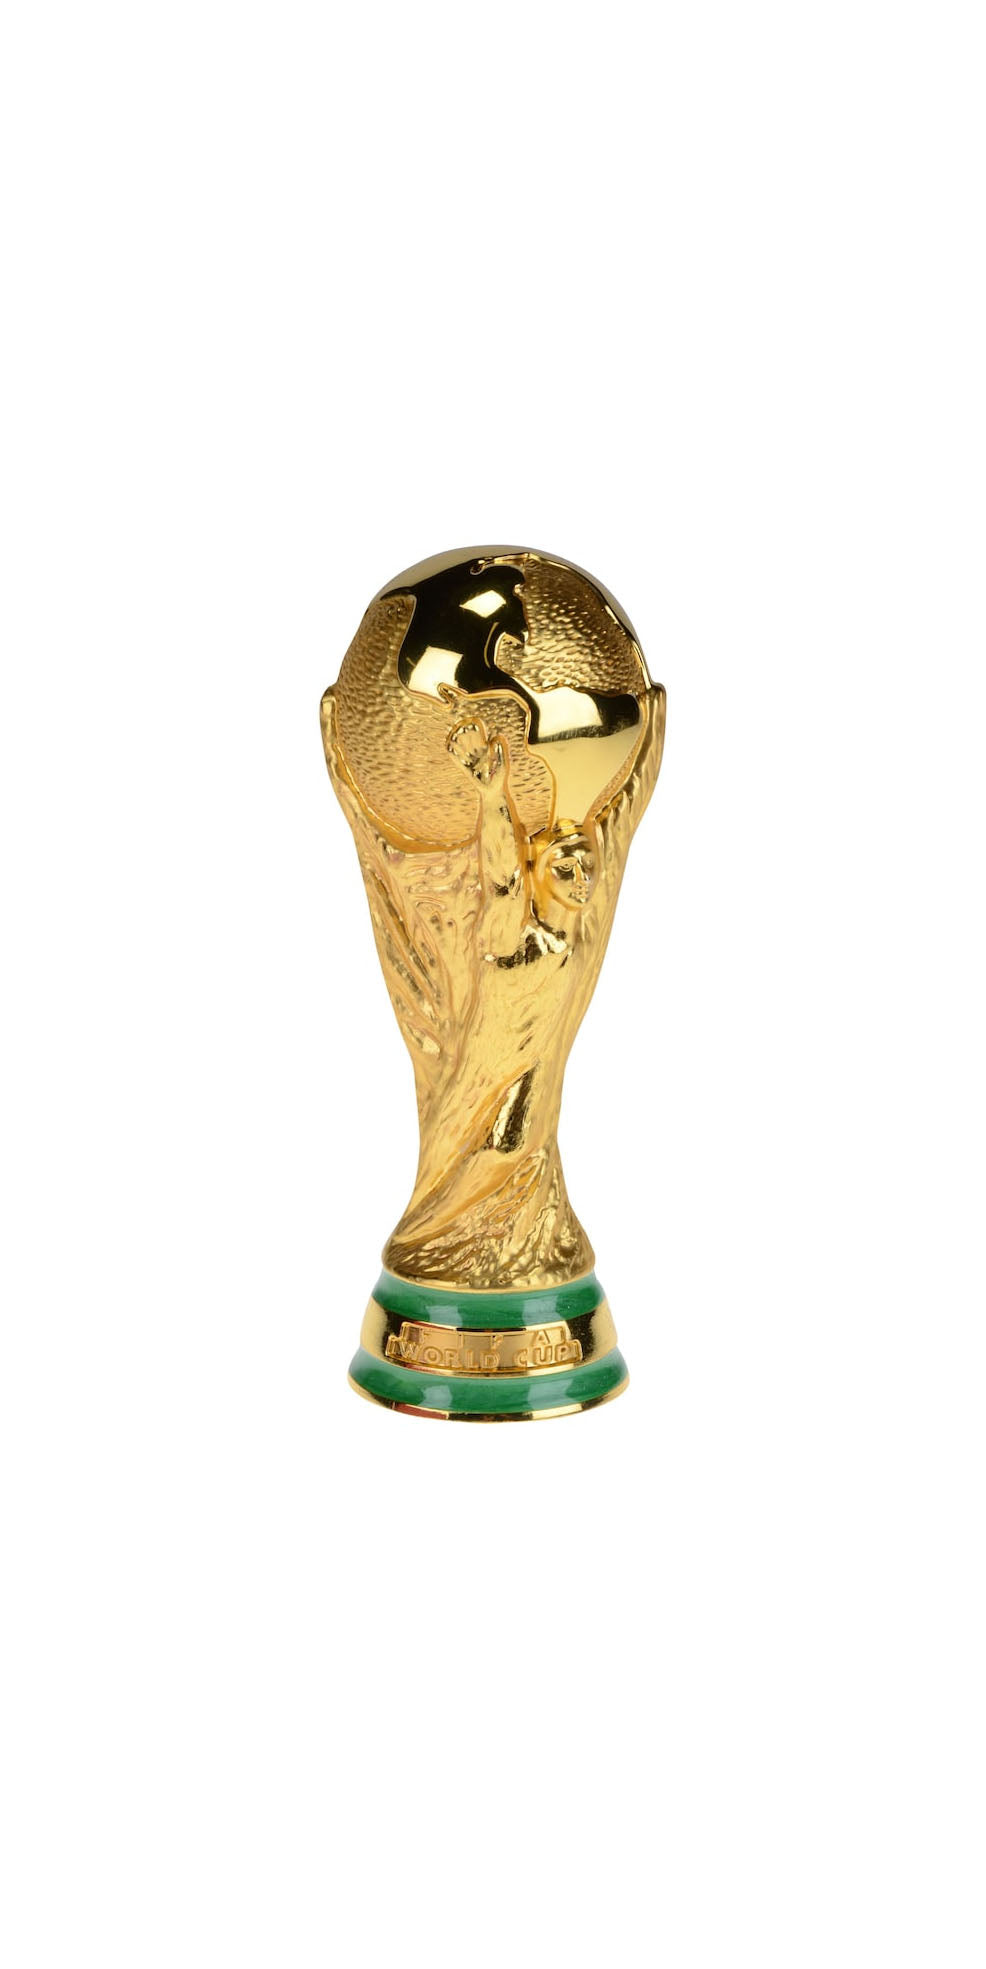 T234 PLASTIC WORLD CUP SOCCER TROPHY